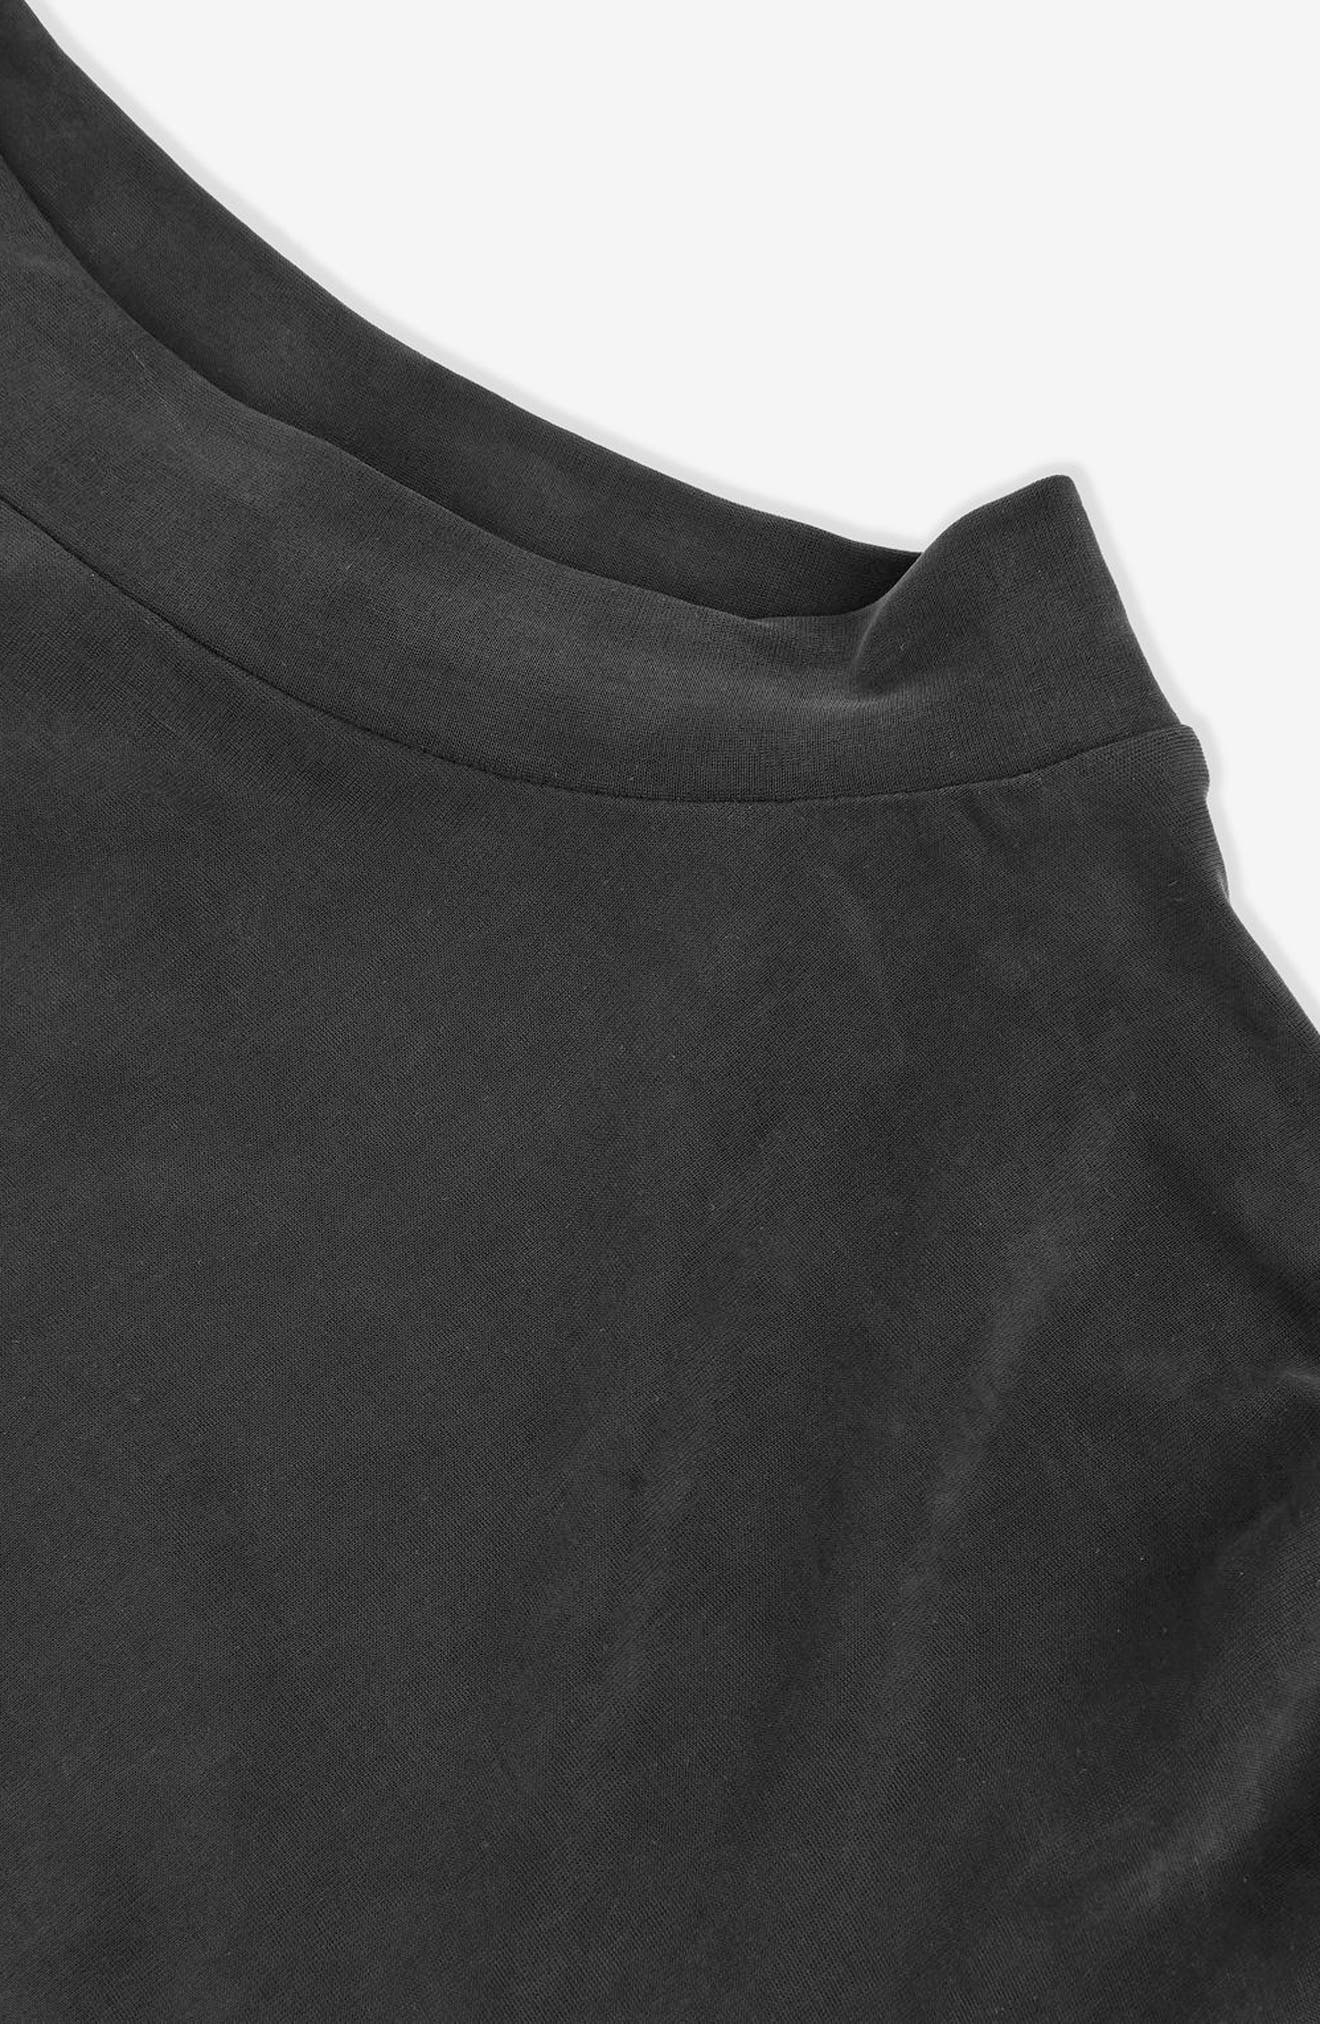 Ruched Cutout Tee,                             Alternate thumbnail 5, color,                             Black